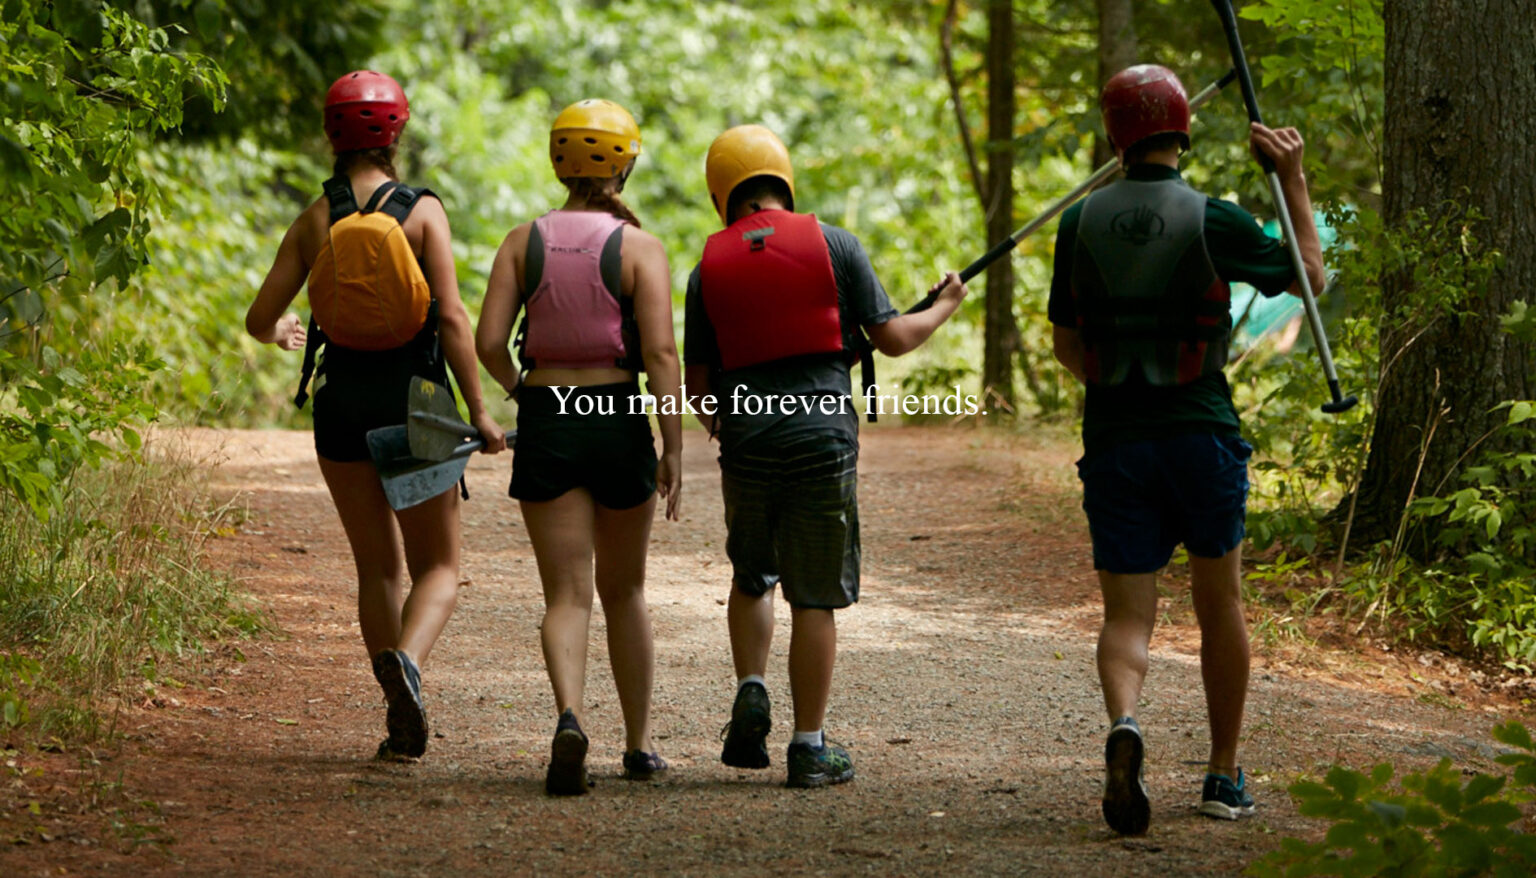 You make forever friends.